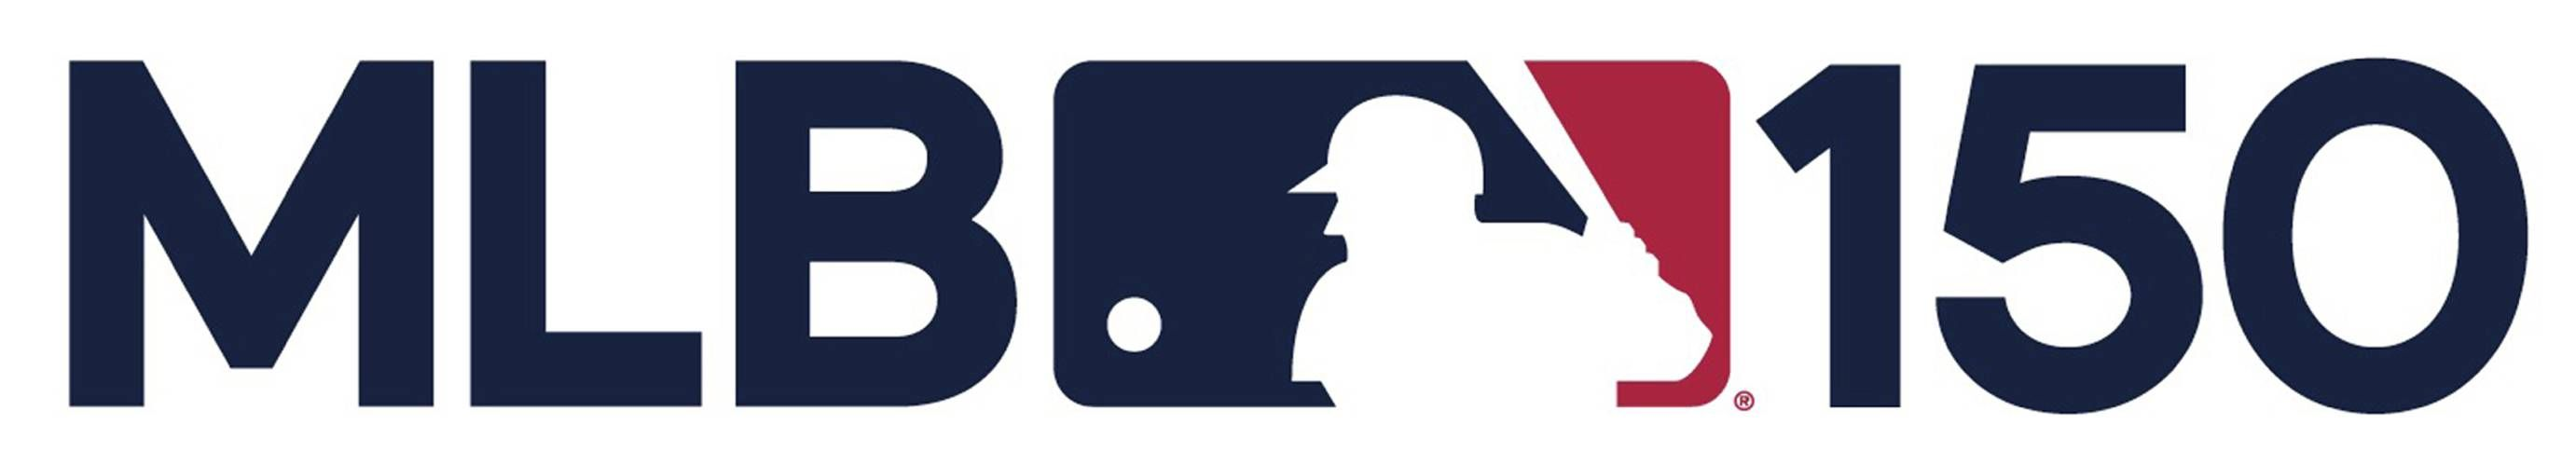 MLB Logo - MLB's 150th anniversary logo features silhouetted batter